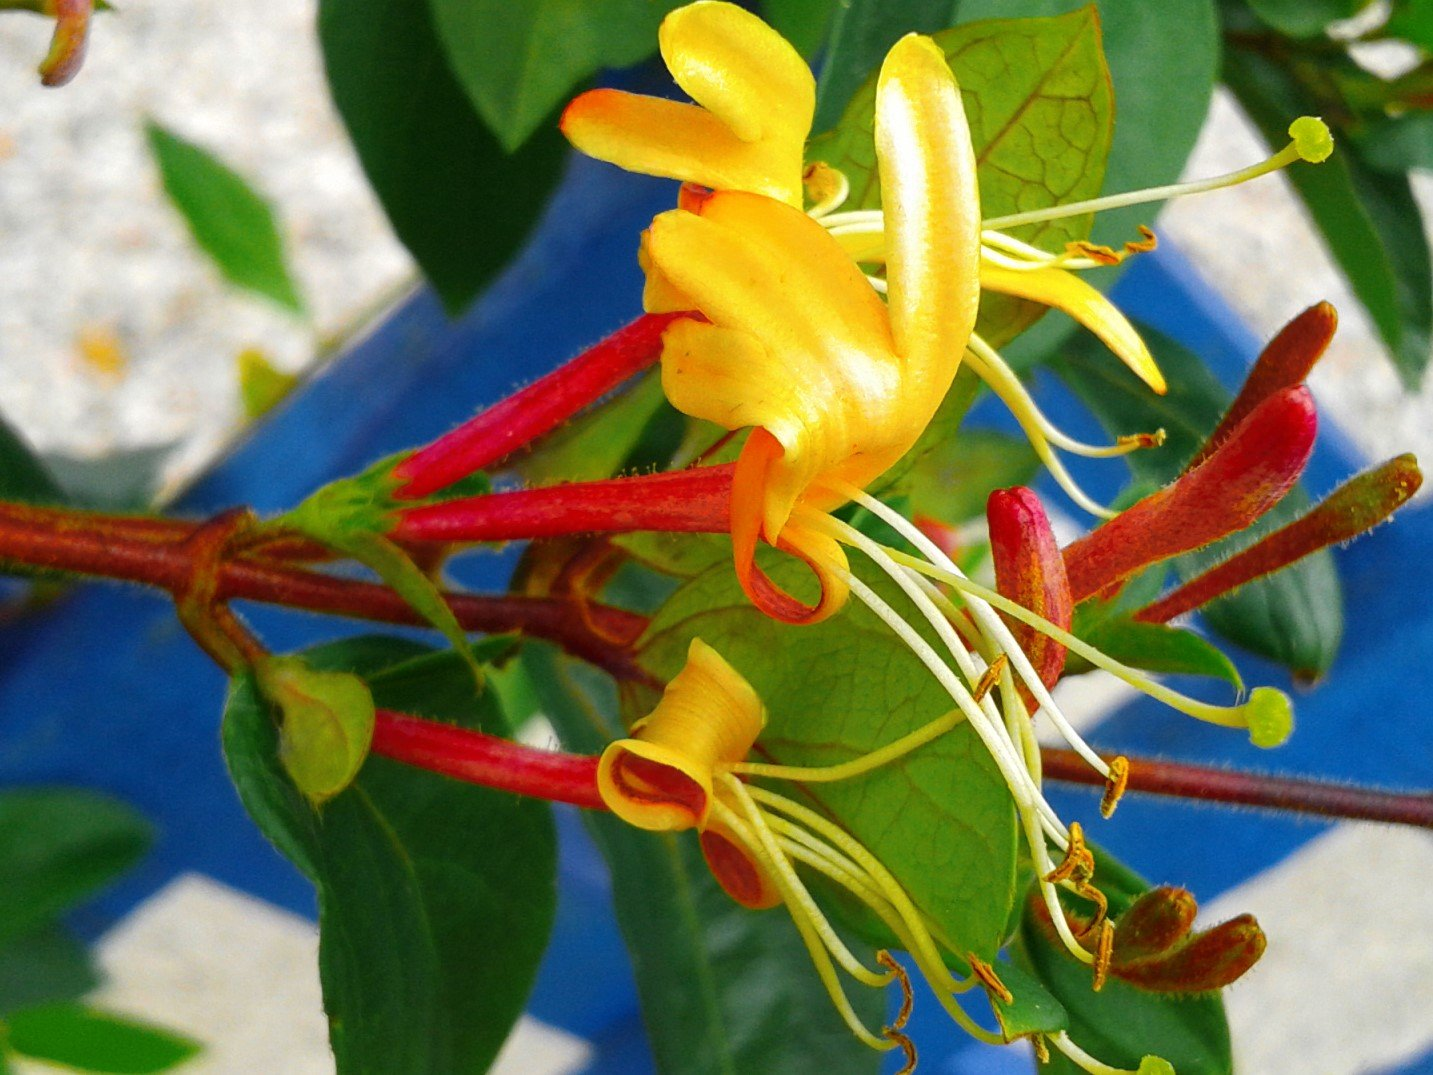 SCENTED CLIMBING HONEYSUCKLE 'LONICERA' GORGEOUS HIGHLY SCENTED HARDY CLIMBER IN 9CM POT CORNWALLPLANTS